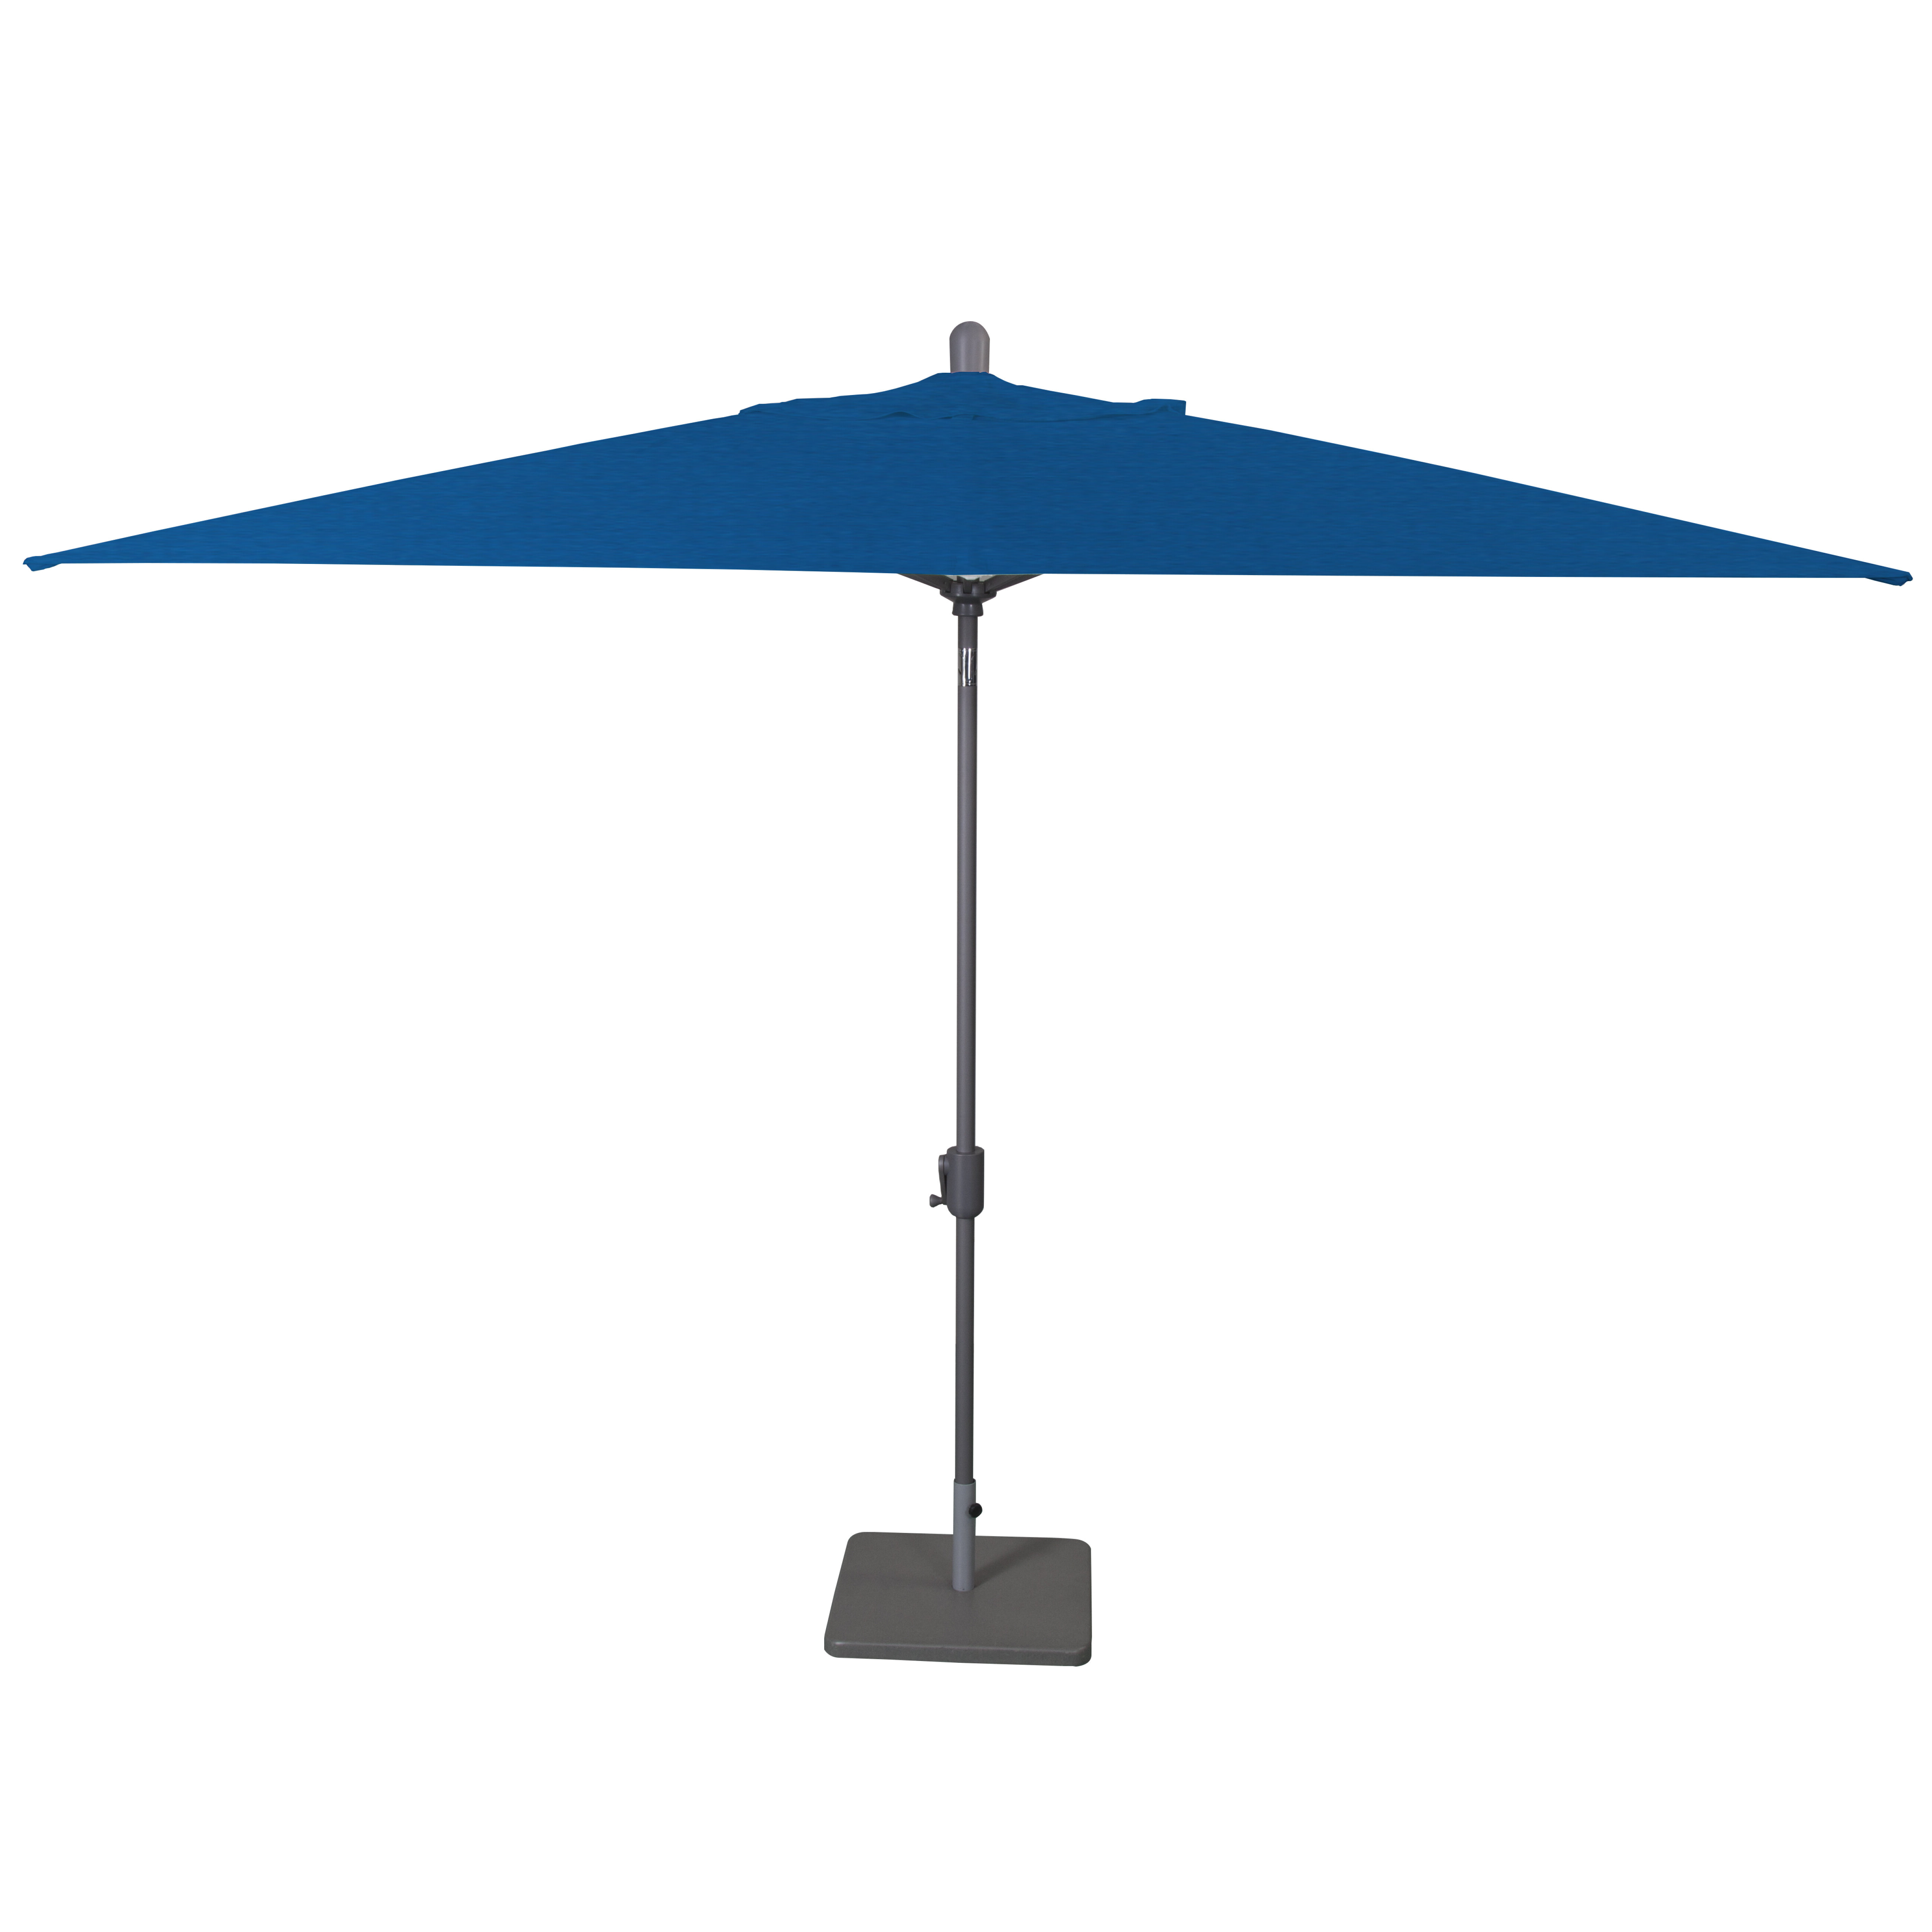 Maglione Fabric 4Cantilever Umbrellas Throughout Most Up To Date Wieczorek Auto Tilt 10' X 6.5' Rectangular Market Sunbrella Umbrella (Gallery 8 of 20)